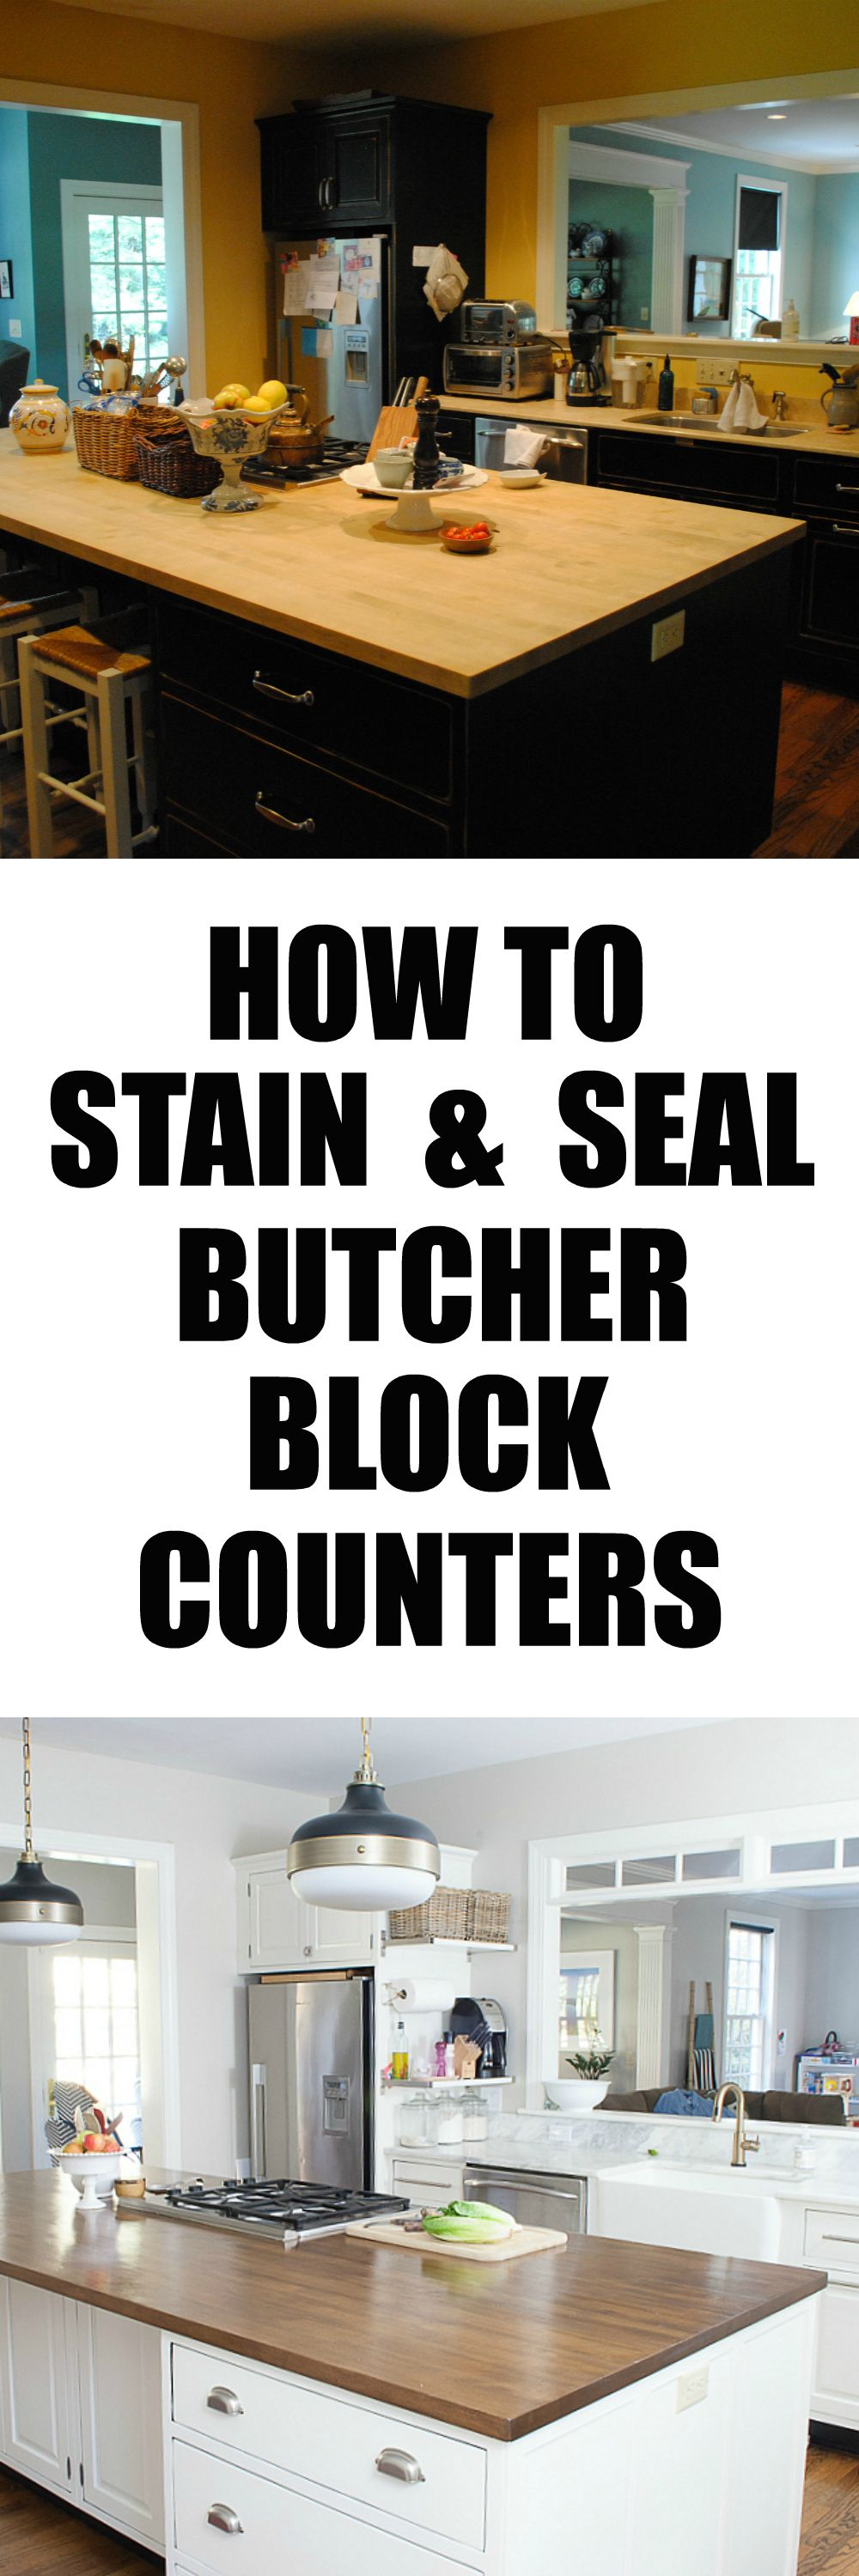 How To Stain And Seal Butcher Block Counters Blogger